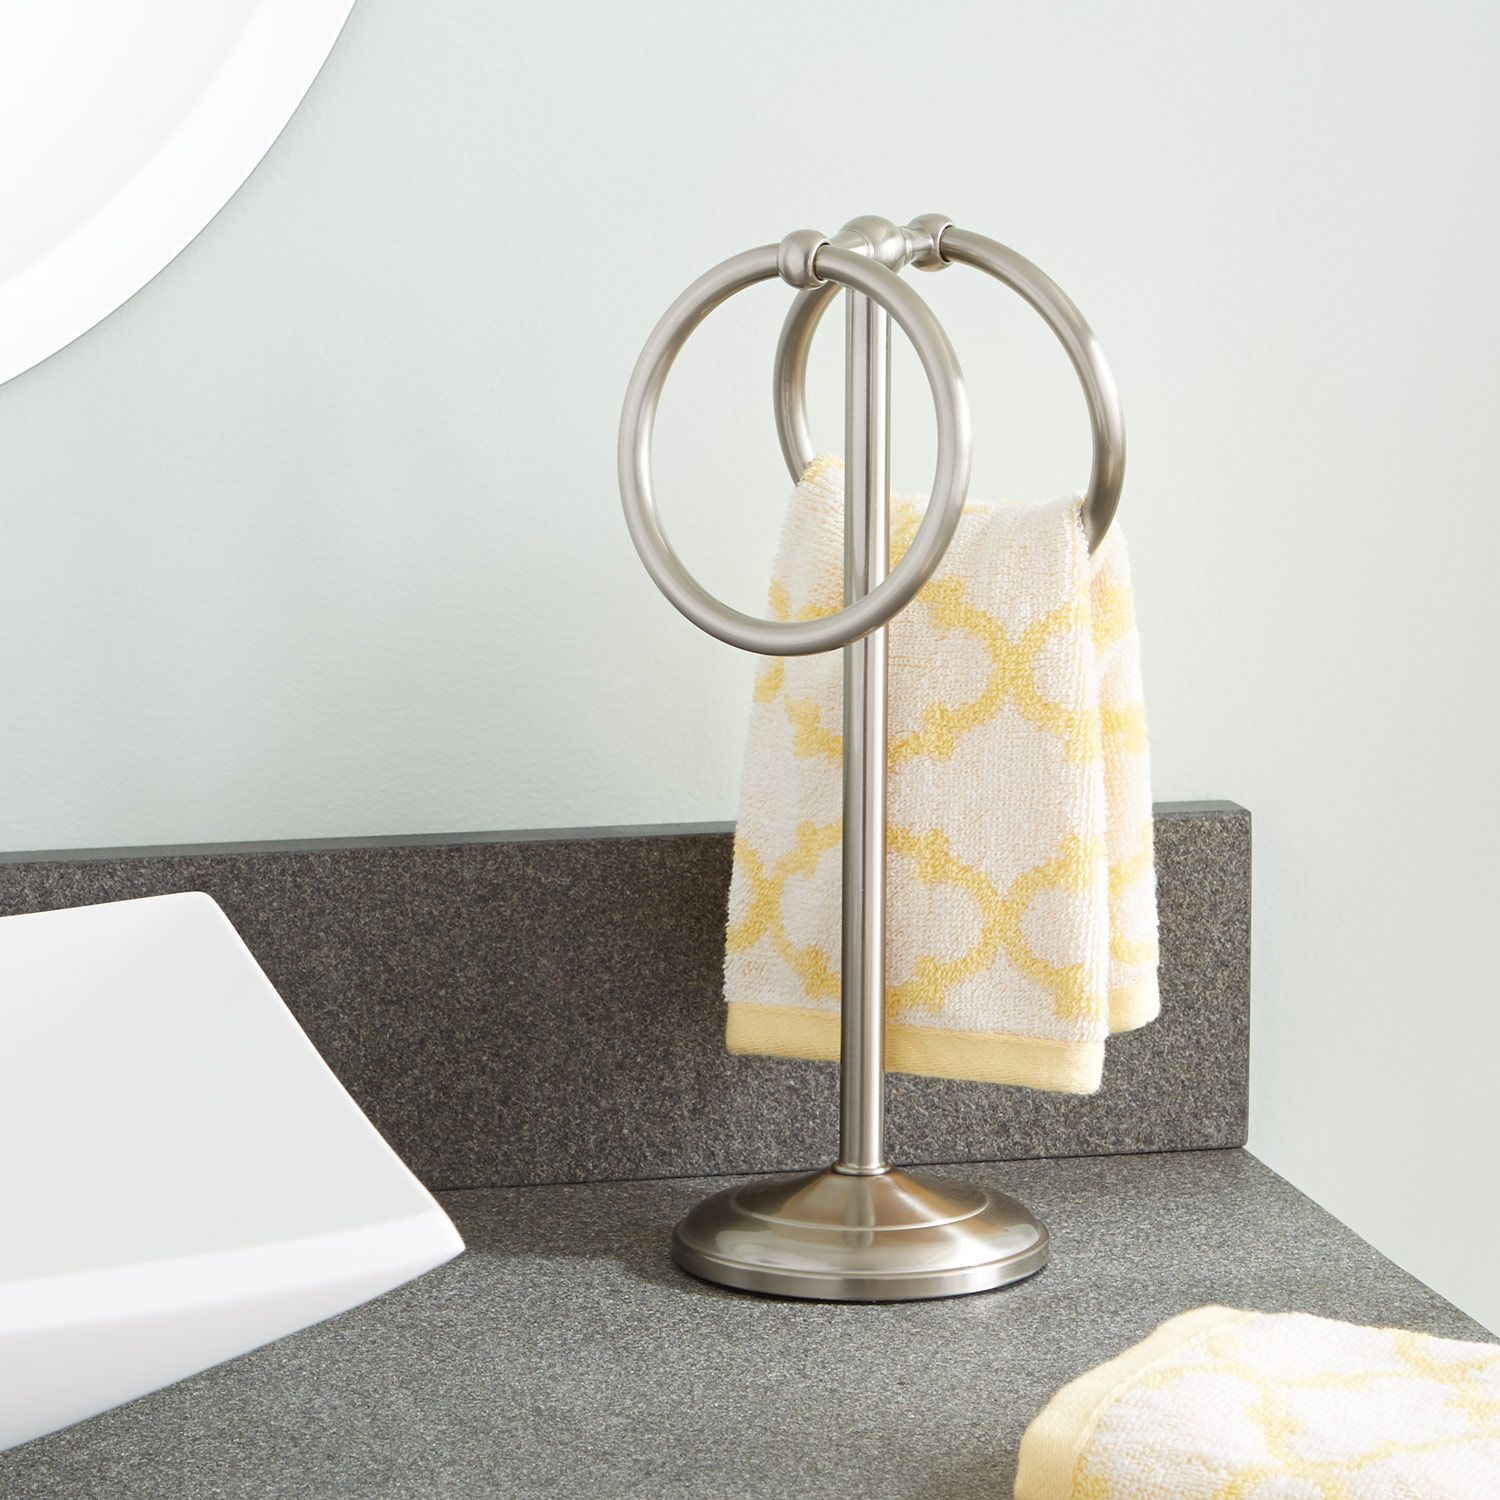 Groovy Drummond Countertop Towel Ring New House Towel Holder Best Image Libraries Counlowcountryjoecom